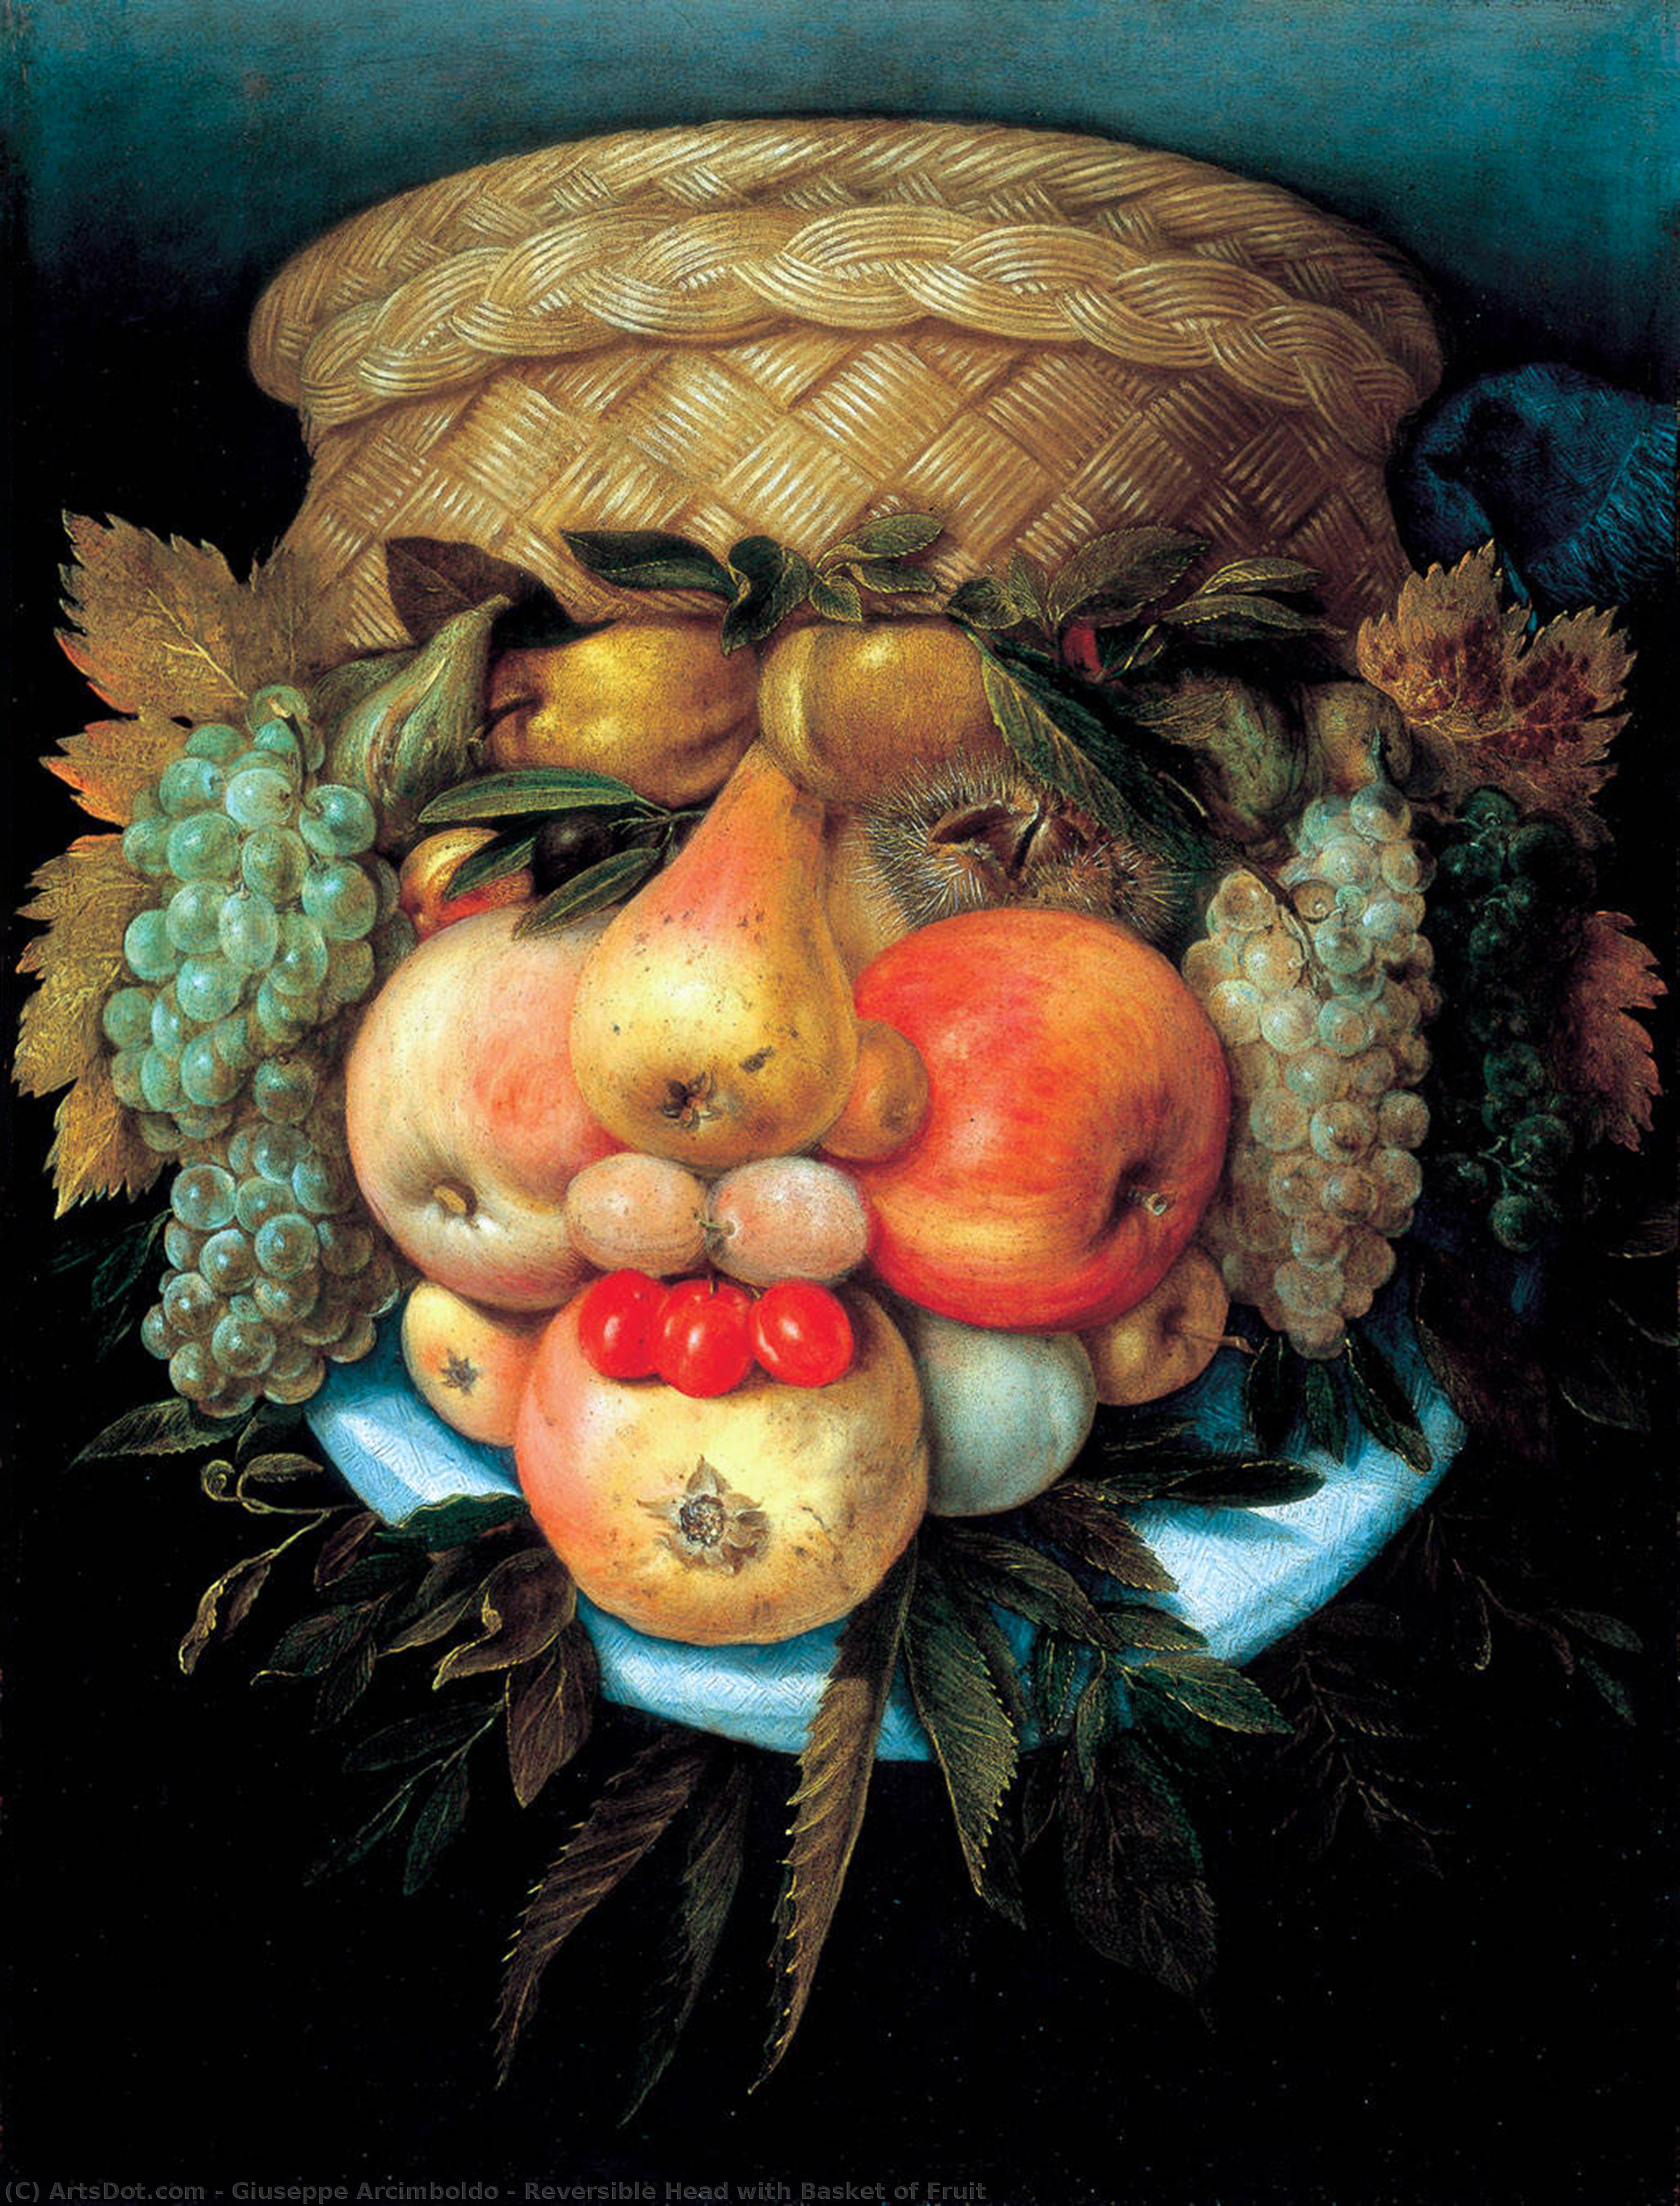 Wikioo.org - The Encyclopedia of Fine Arts - Painting, Artwork by Giuseppe Arcimboldo - Reversible Head with Basket of Fruit